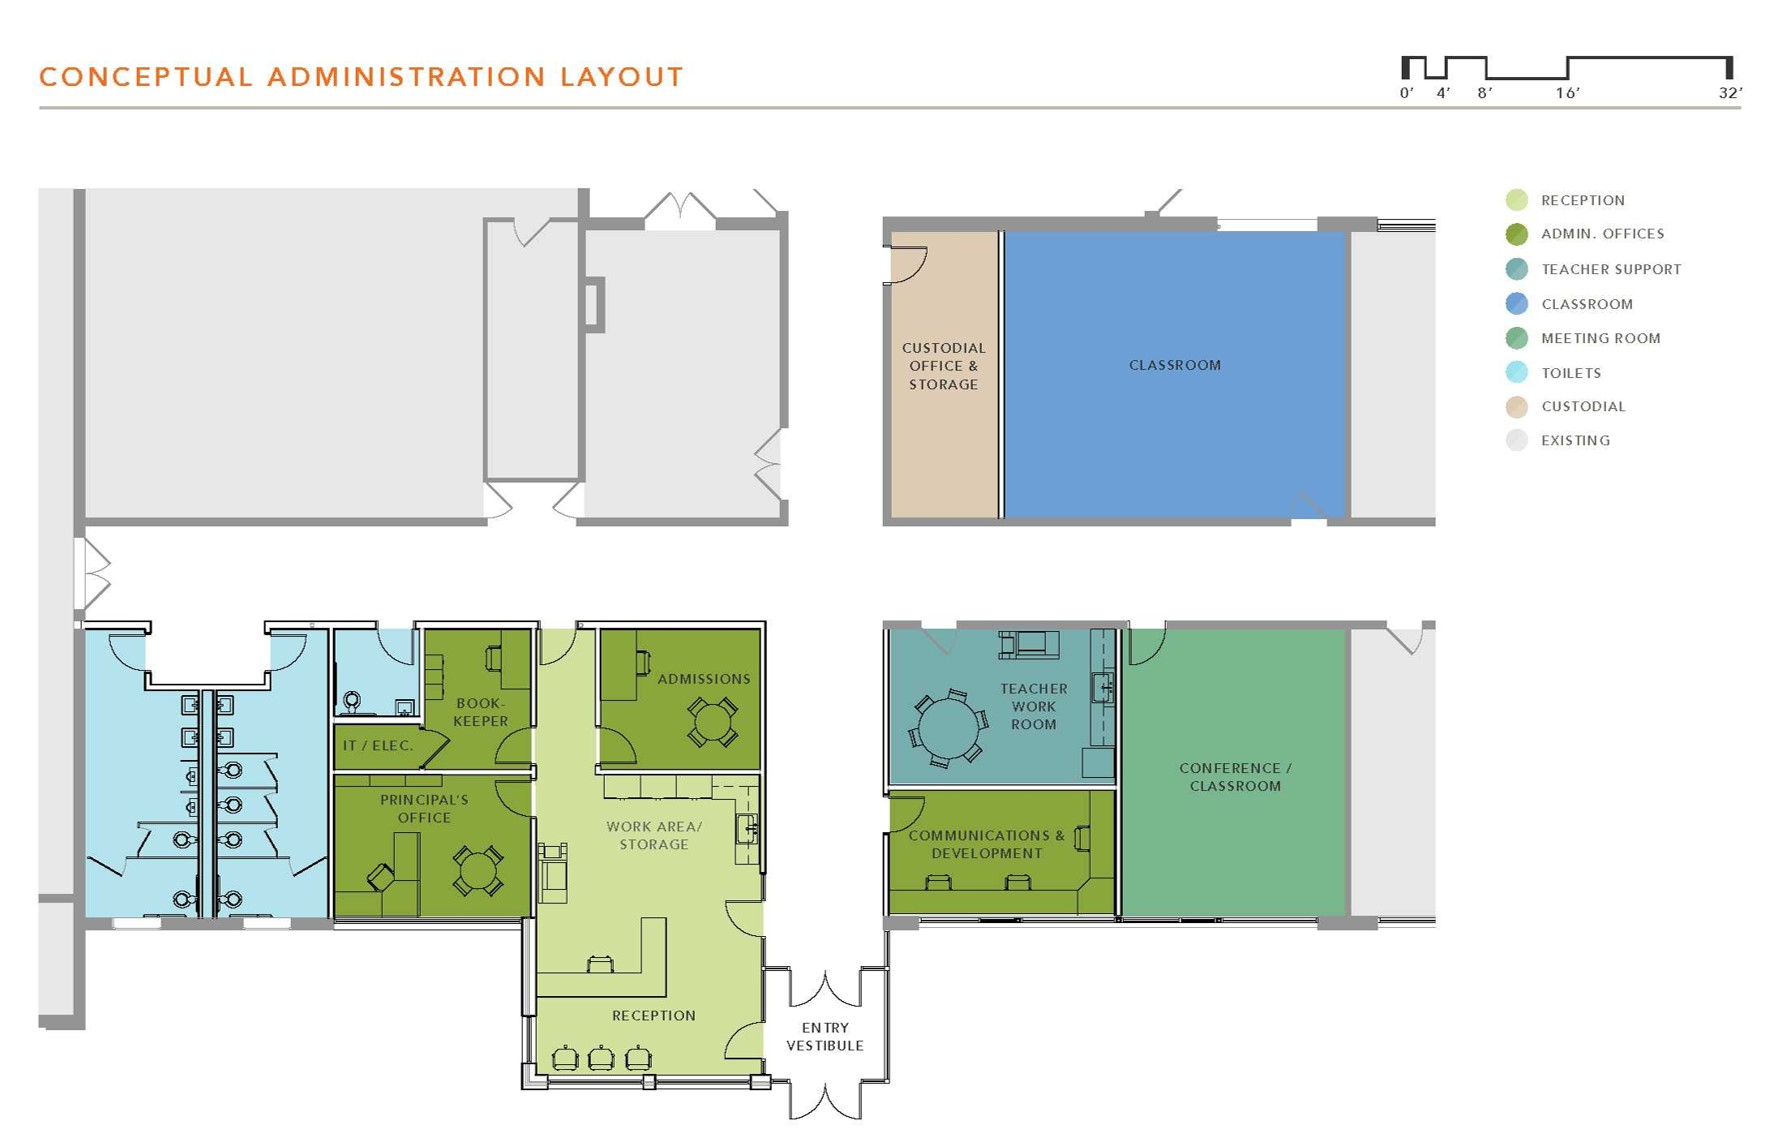 Front office conceptual layout